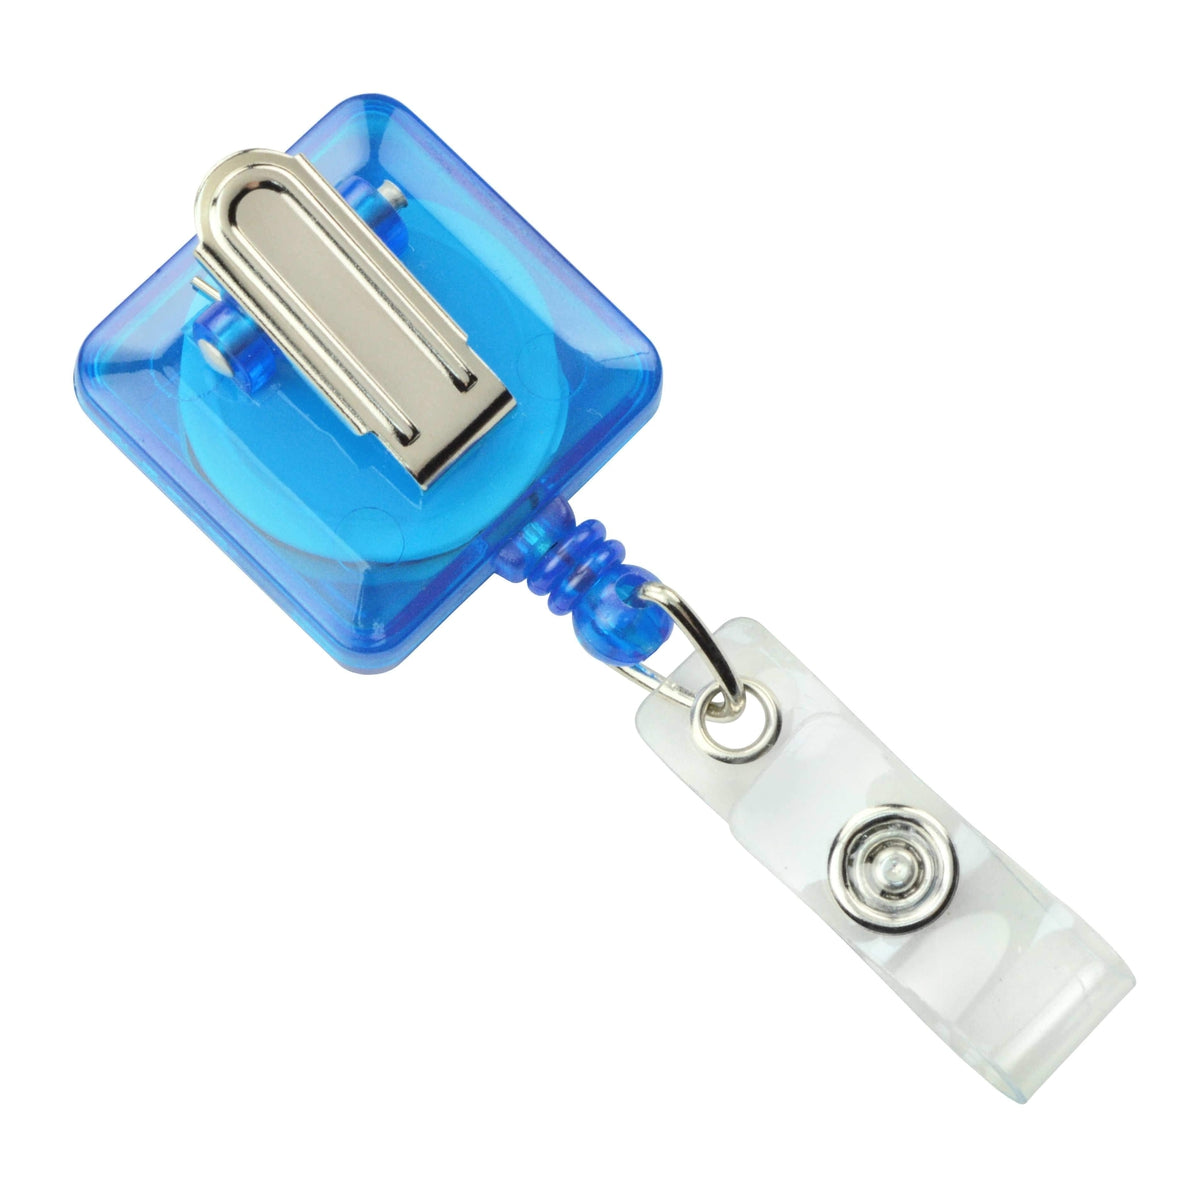 Showing back side of square translucent blue retractable badge reel with spring clip